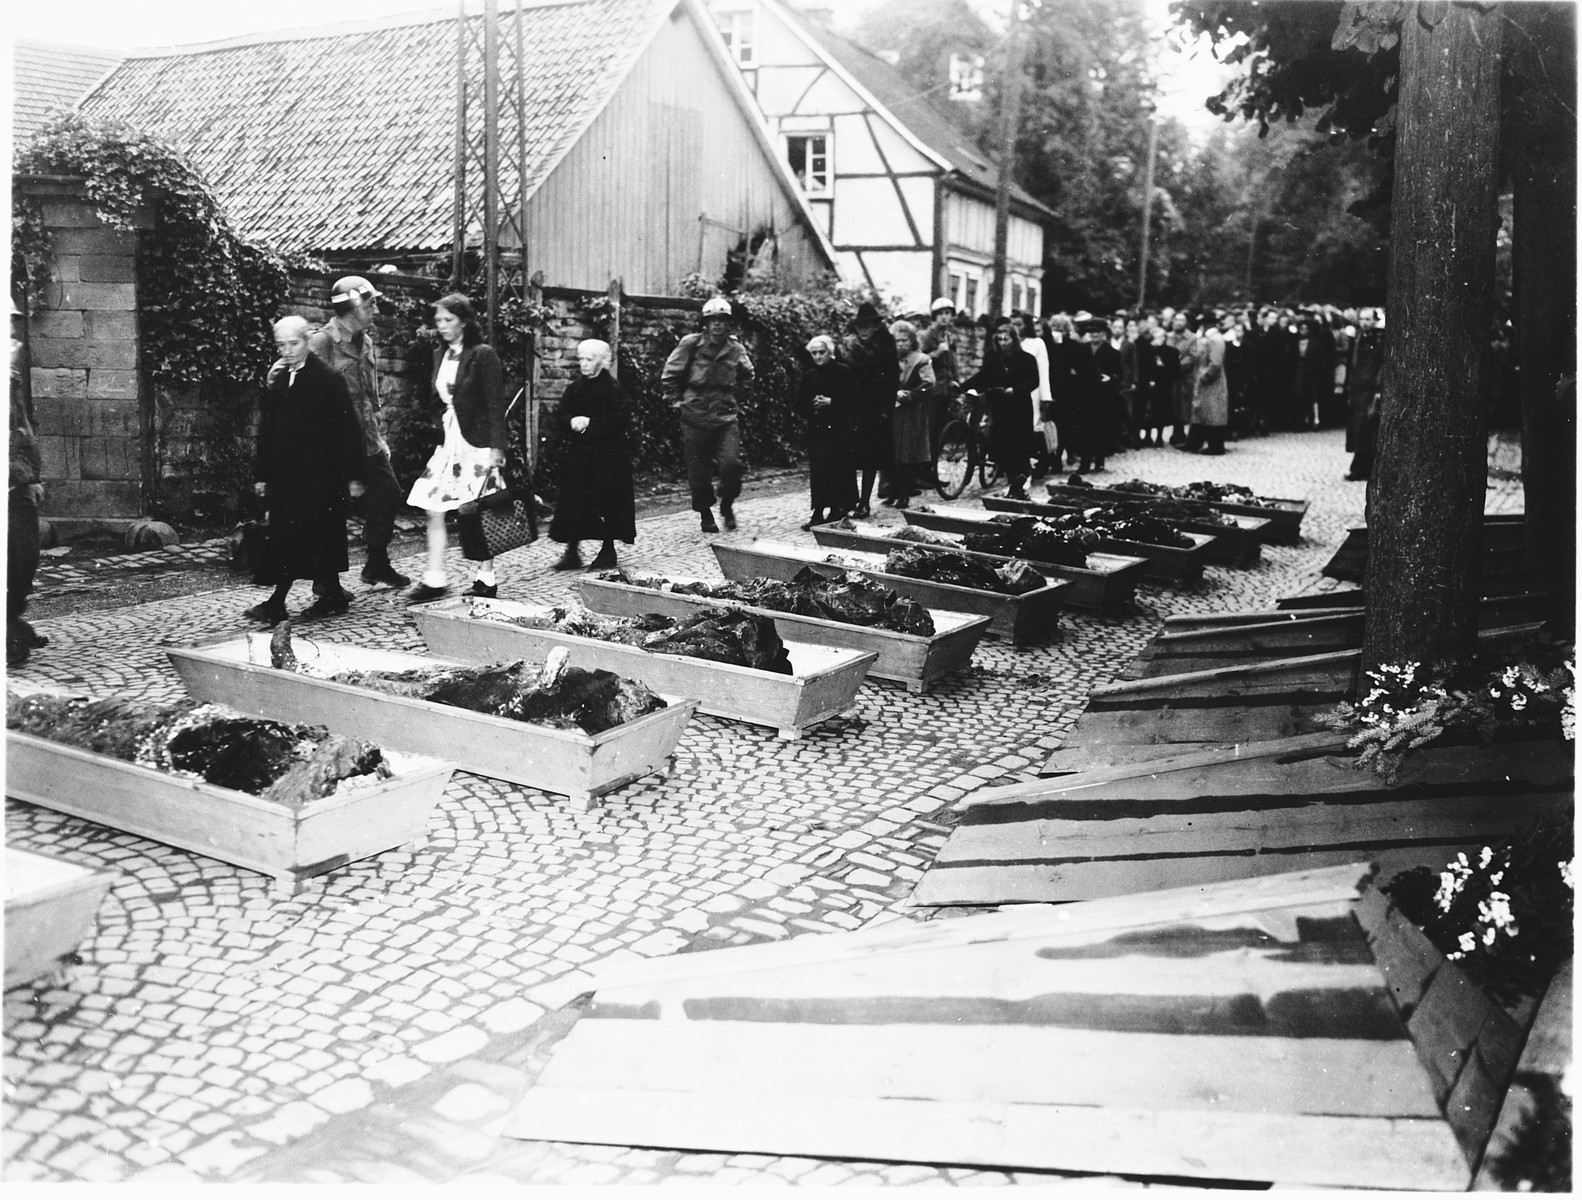 German civilians from Lindlar are forced to look at the exhumed bodies of ten Russians, which had been thrown into a ravine and buried.   The victims were shot on April 4, 1945, by members of the Volkssturm (civilian militia) in retaliation for the killing of the local group leader (SS, SA?) in Overath.